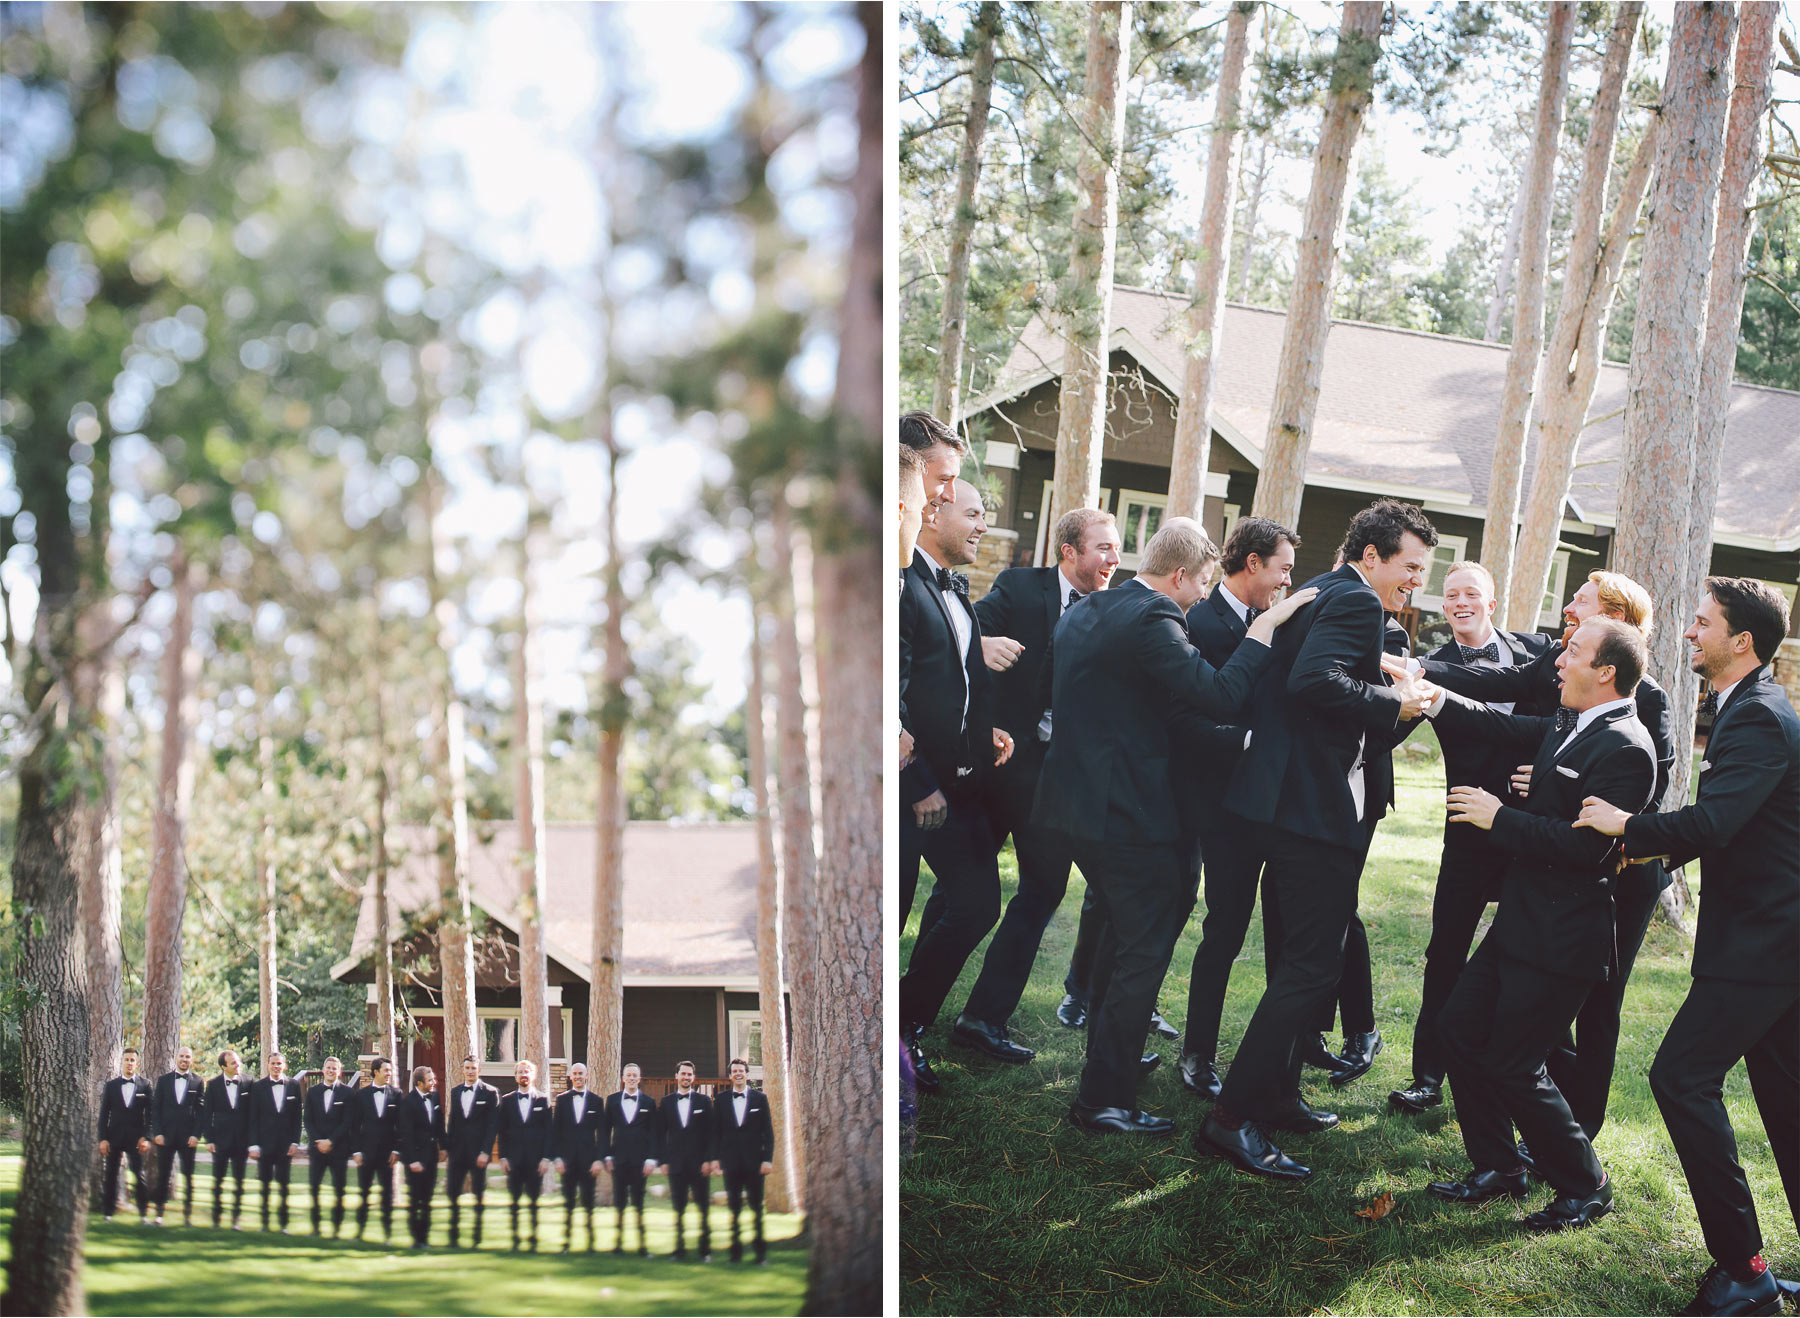 04-Brainerd-Minnesota-Wedding-Photography-by-Vick-Photography-Grand-View-Lodge-Woods-Groomsmen-Bethany-and-Anthony.jpg